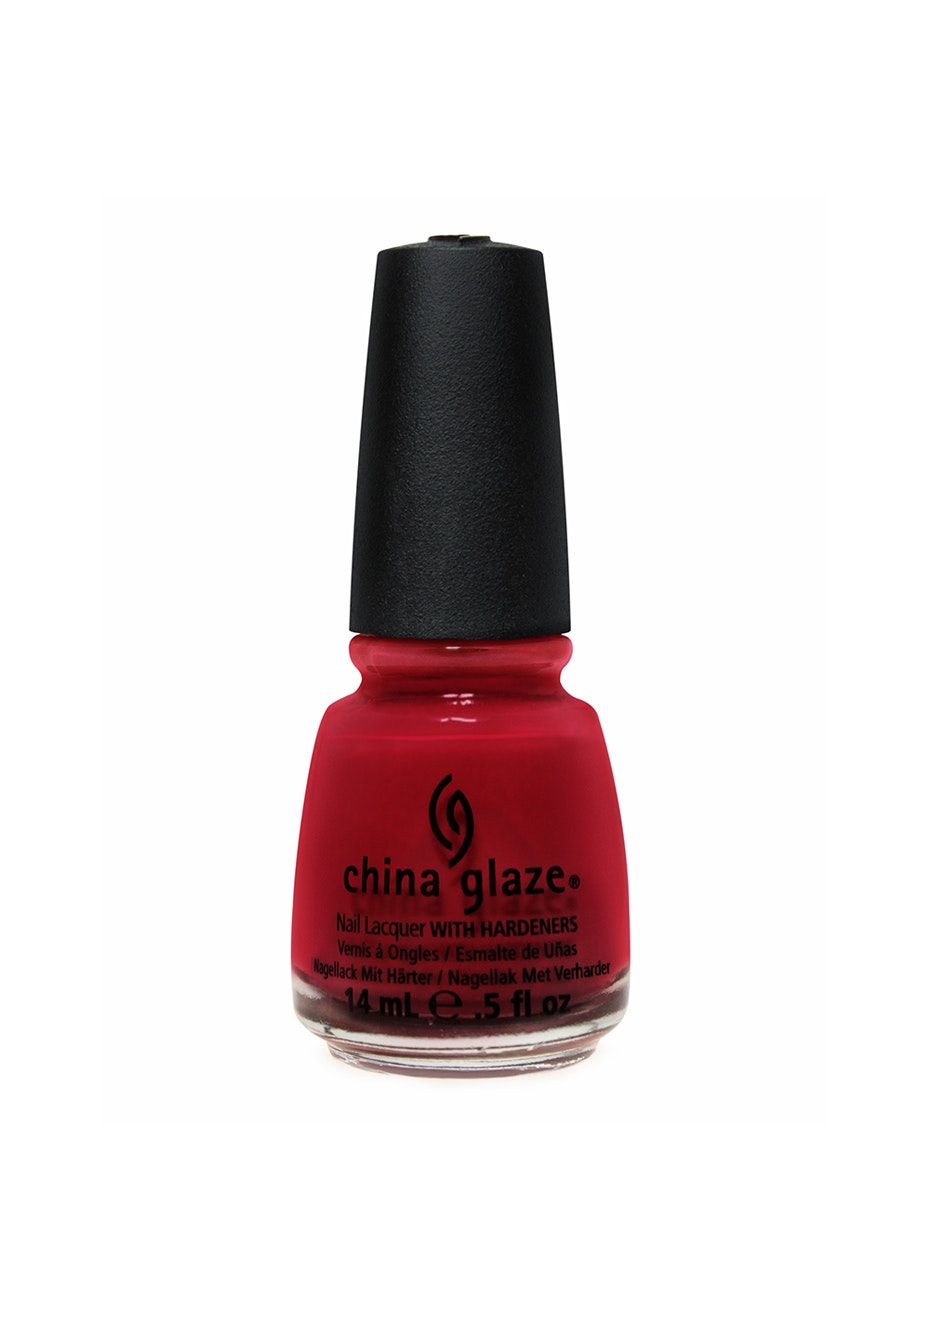 China Glaze #043 VERMILLION